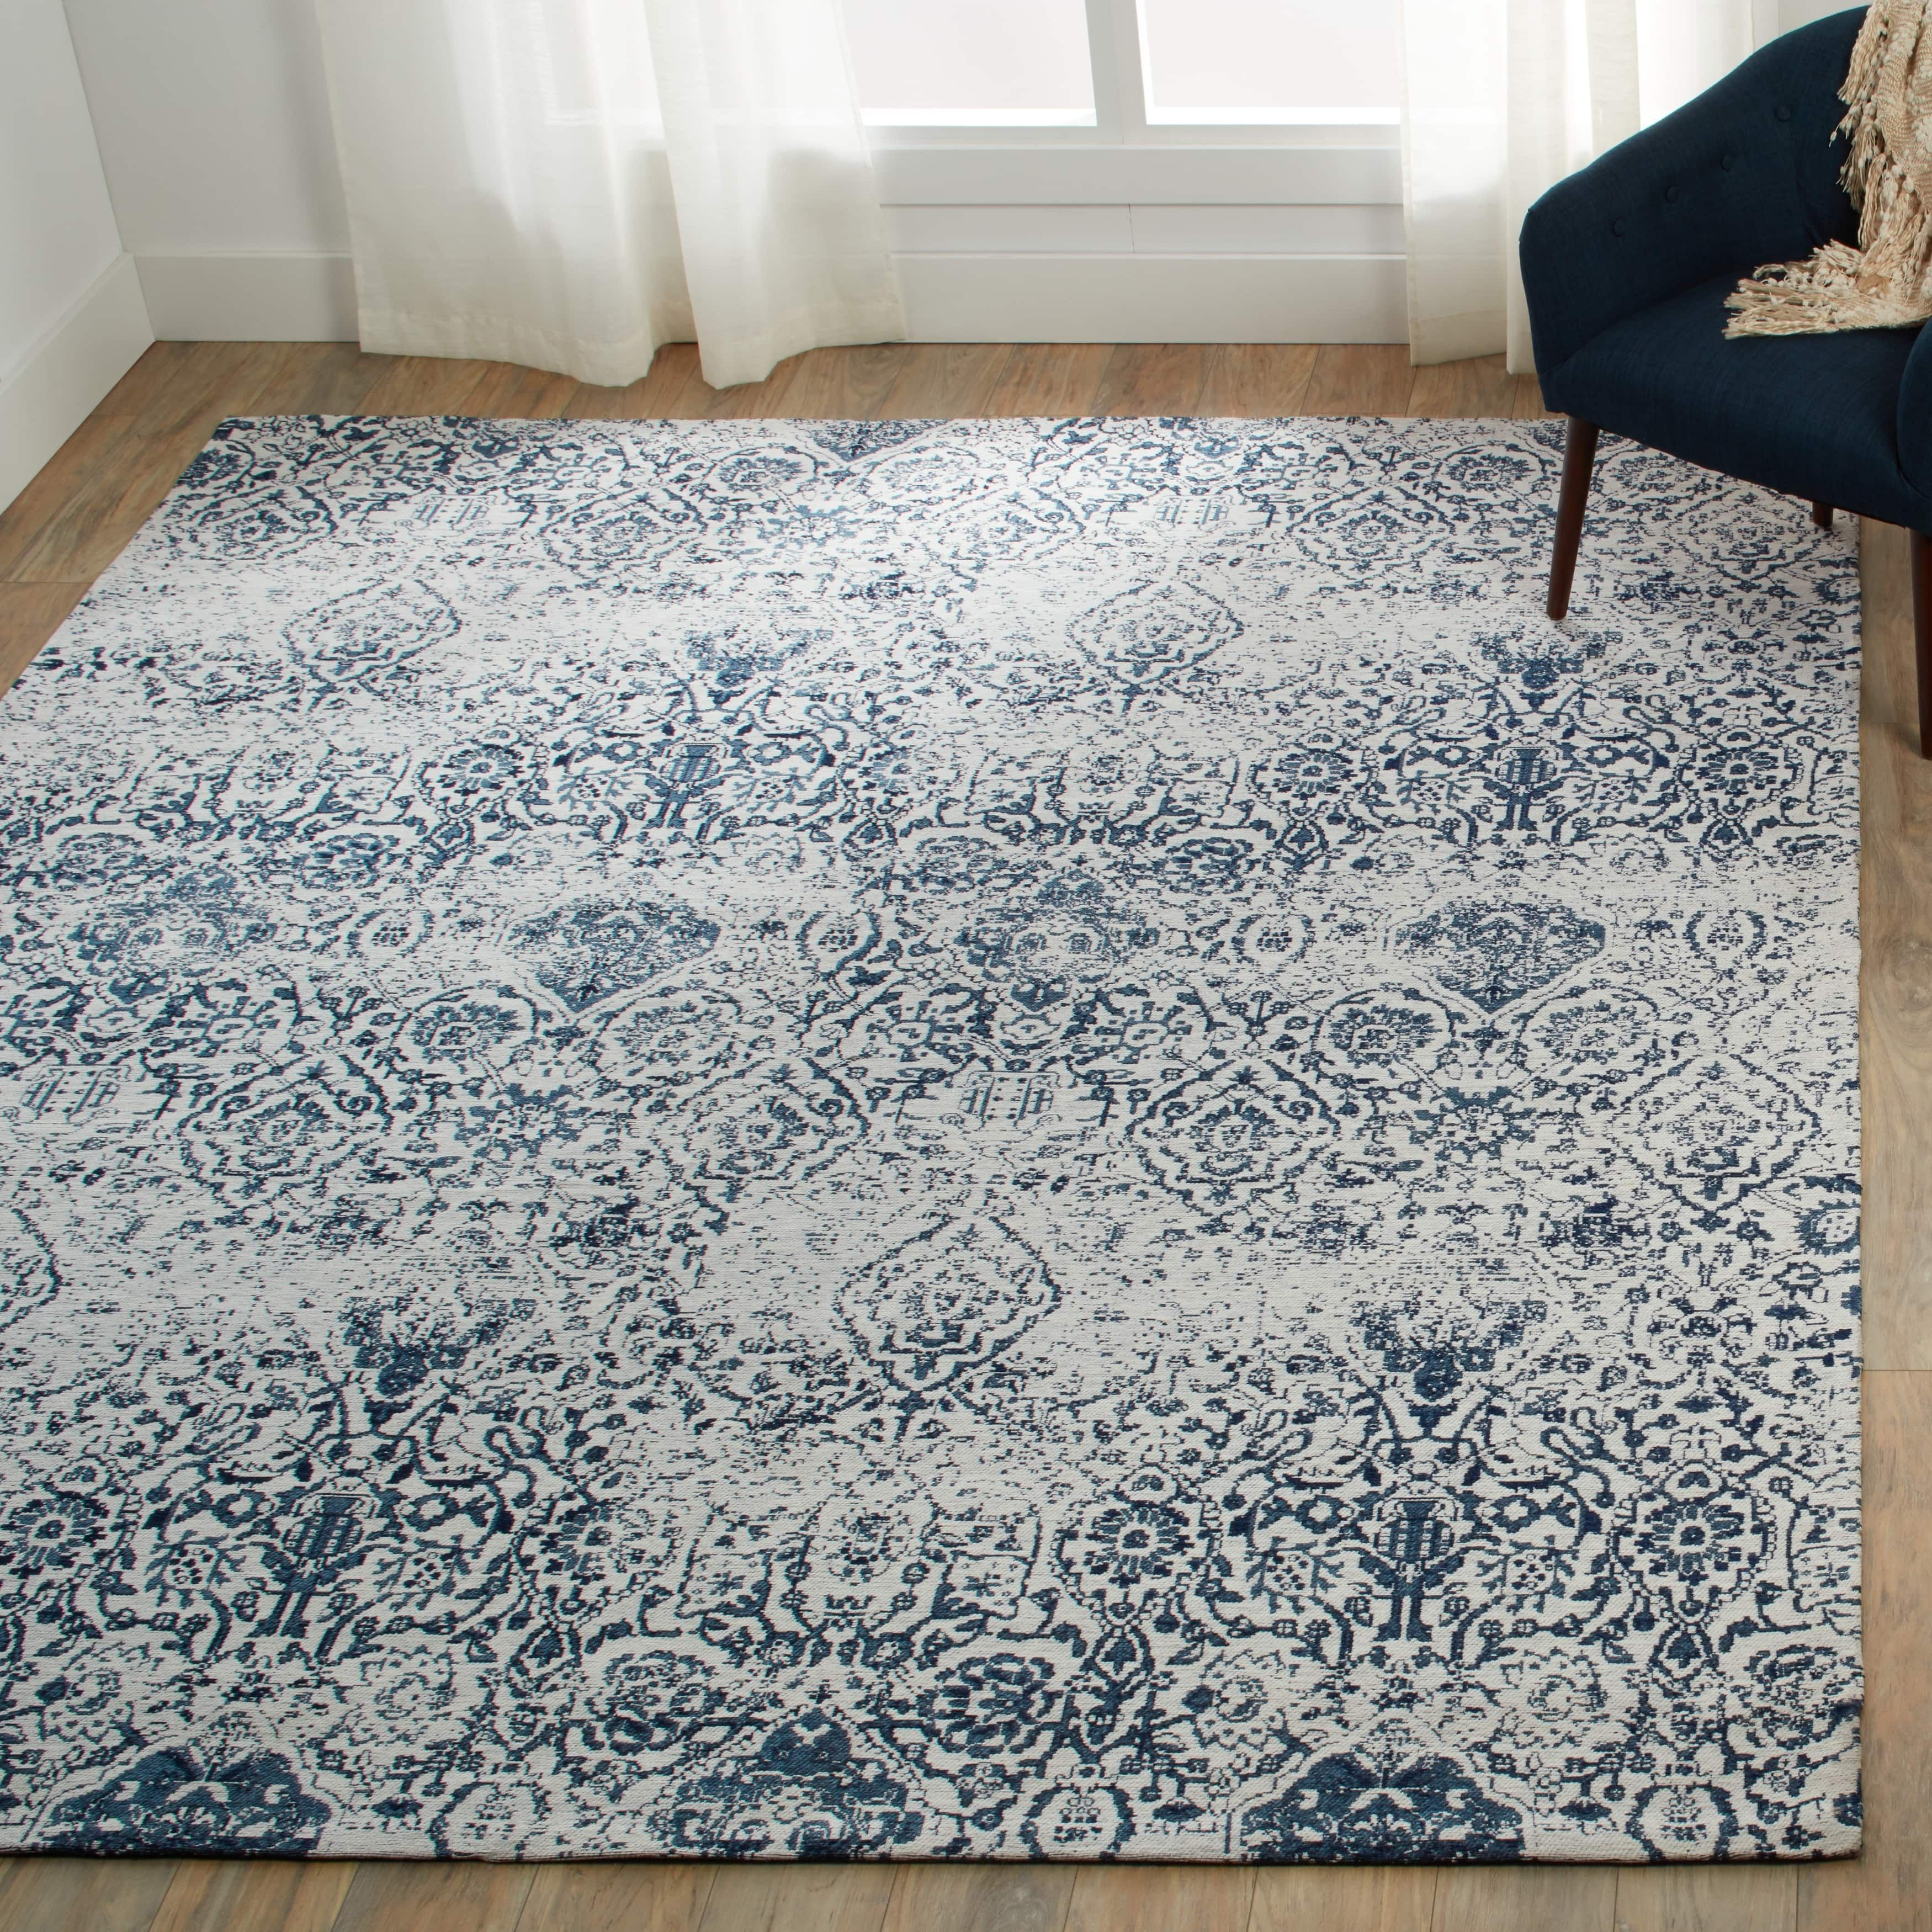 Nourison Damask Distressed Area Rug Cool Rugs Area Rugs For Sale Vintage Style Decorating